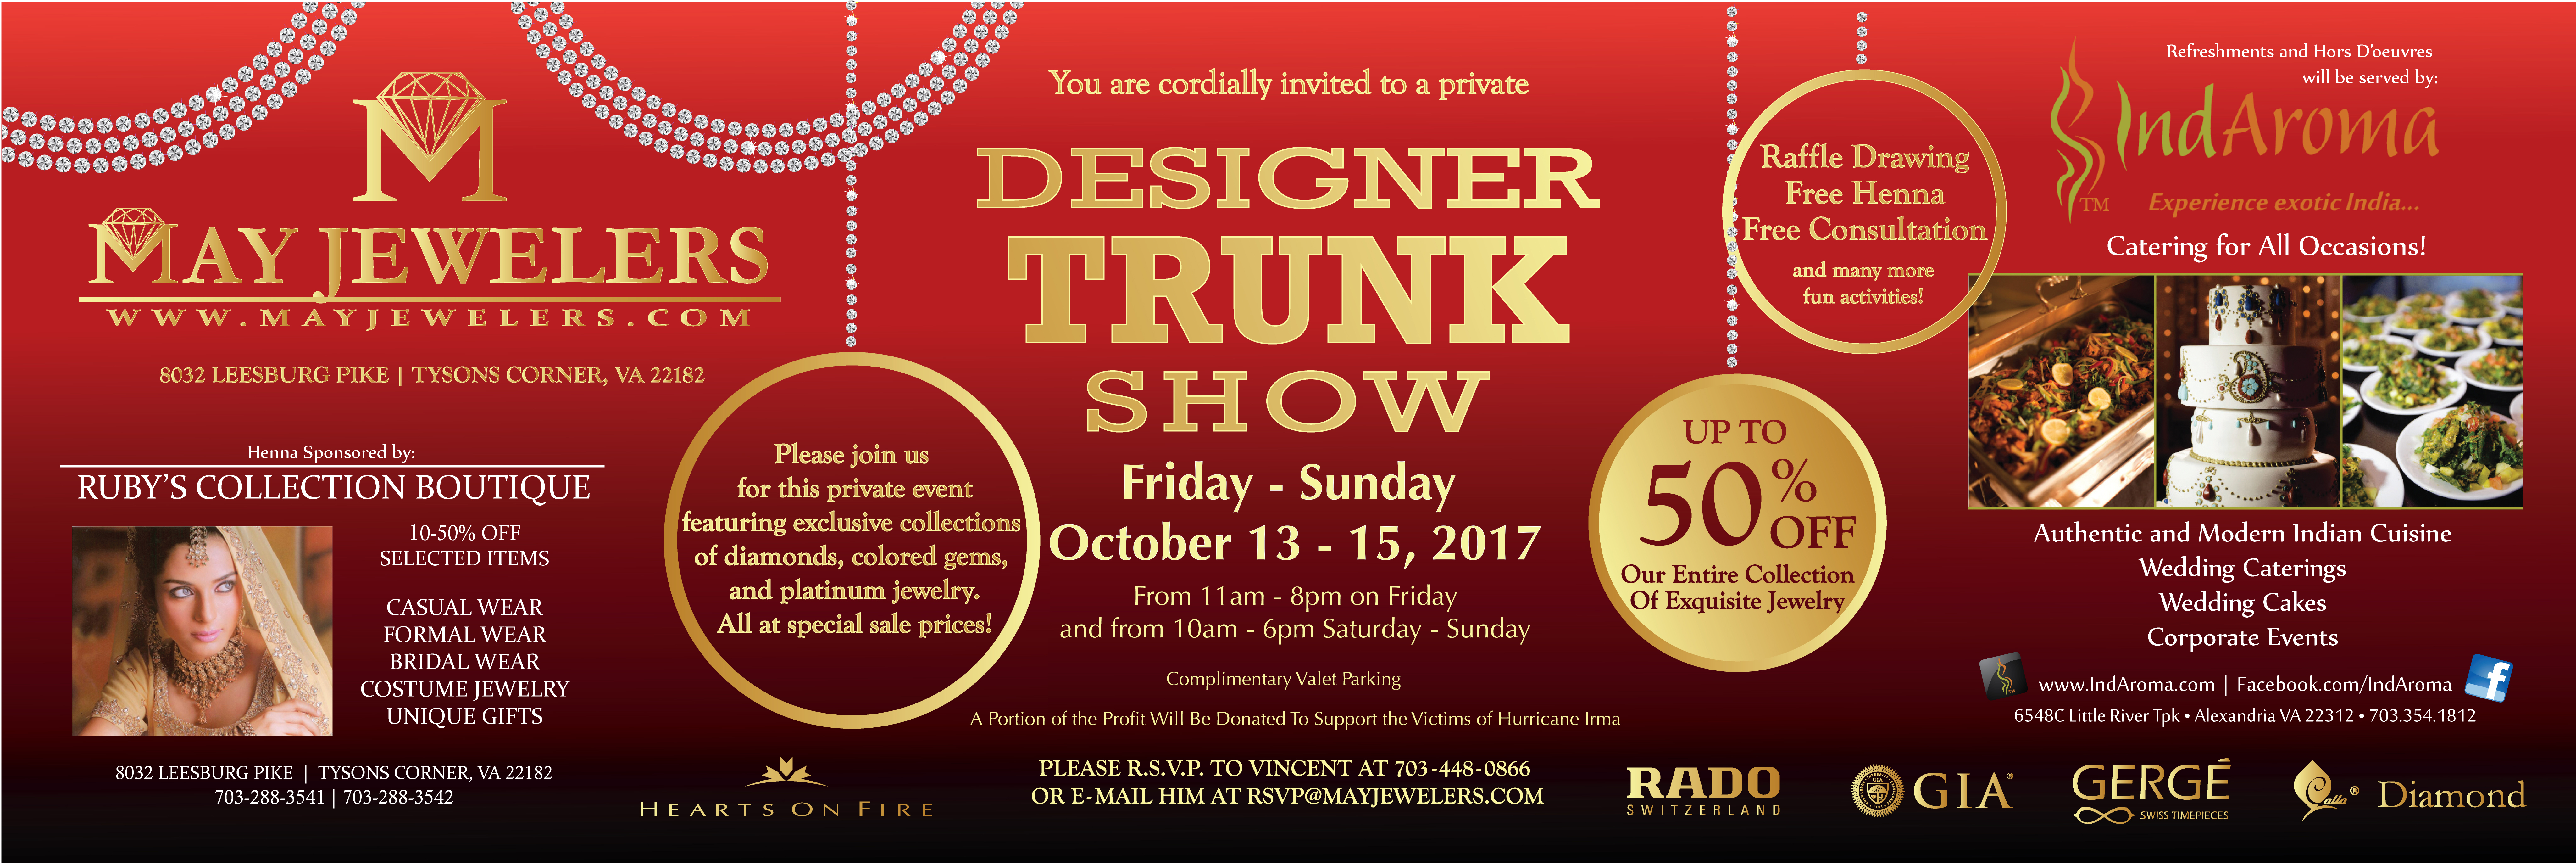 May Jewelers Designer Trunk Show Fall 2017